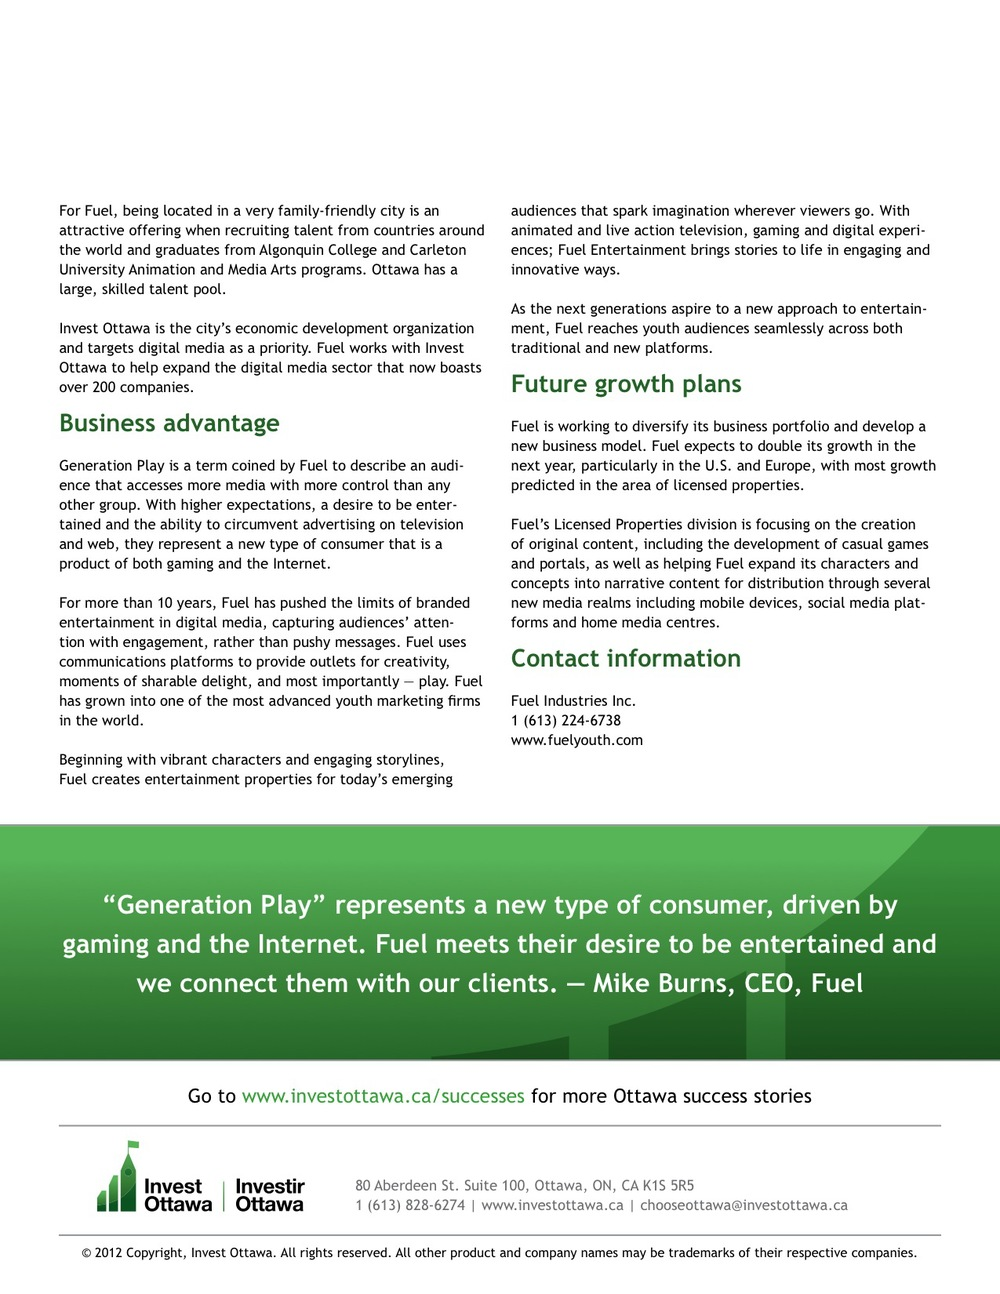 InvestOttawa-Fuel-VIEW-page2.jpg